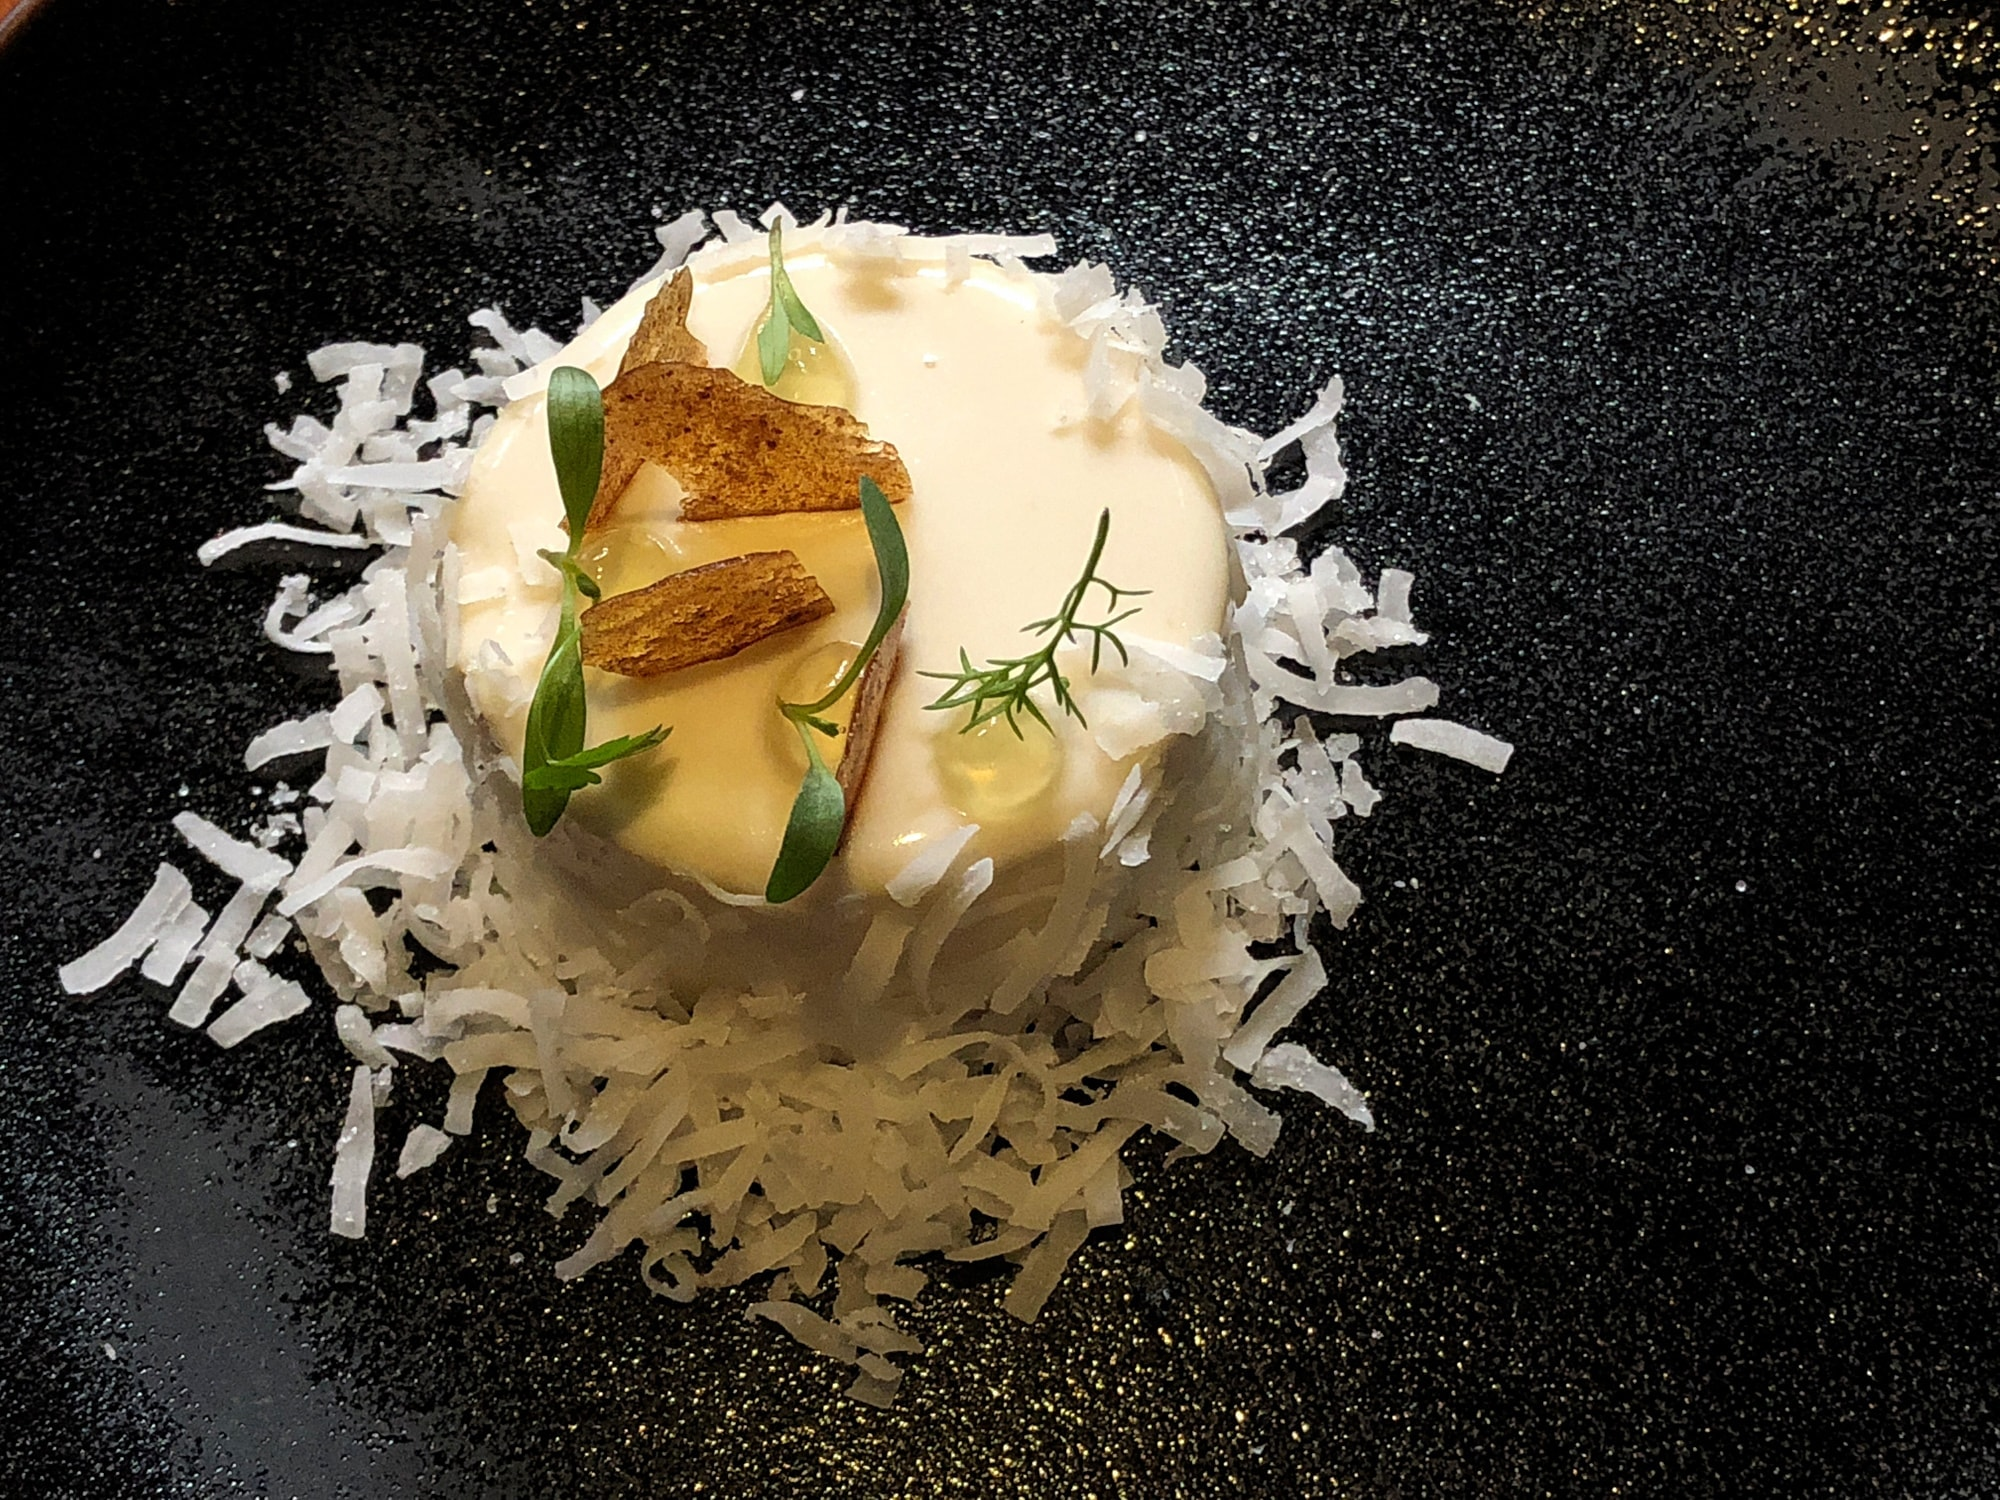 Coconut passion fruit dessert at Sud 777 in Mexico City